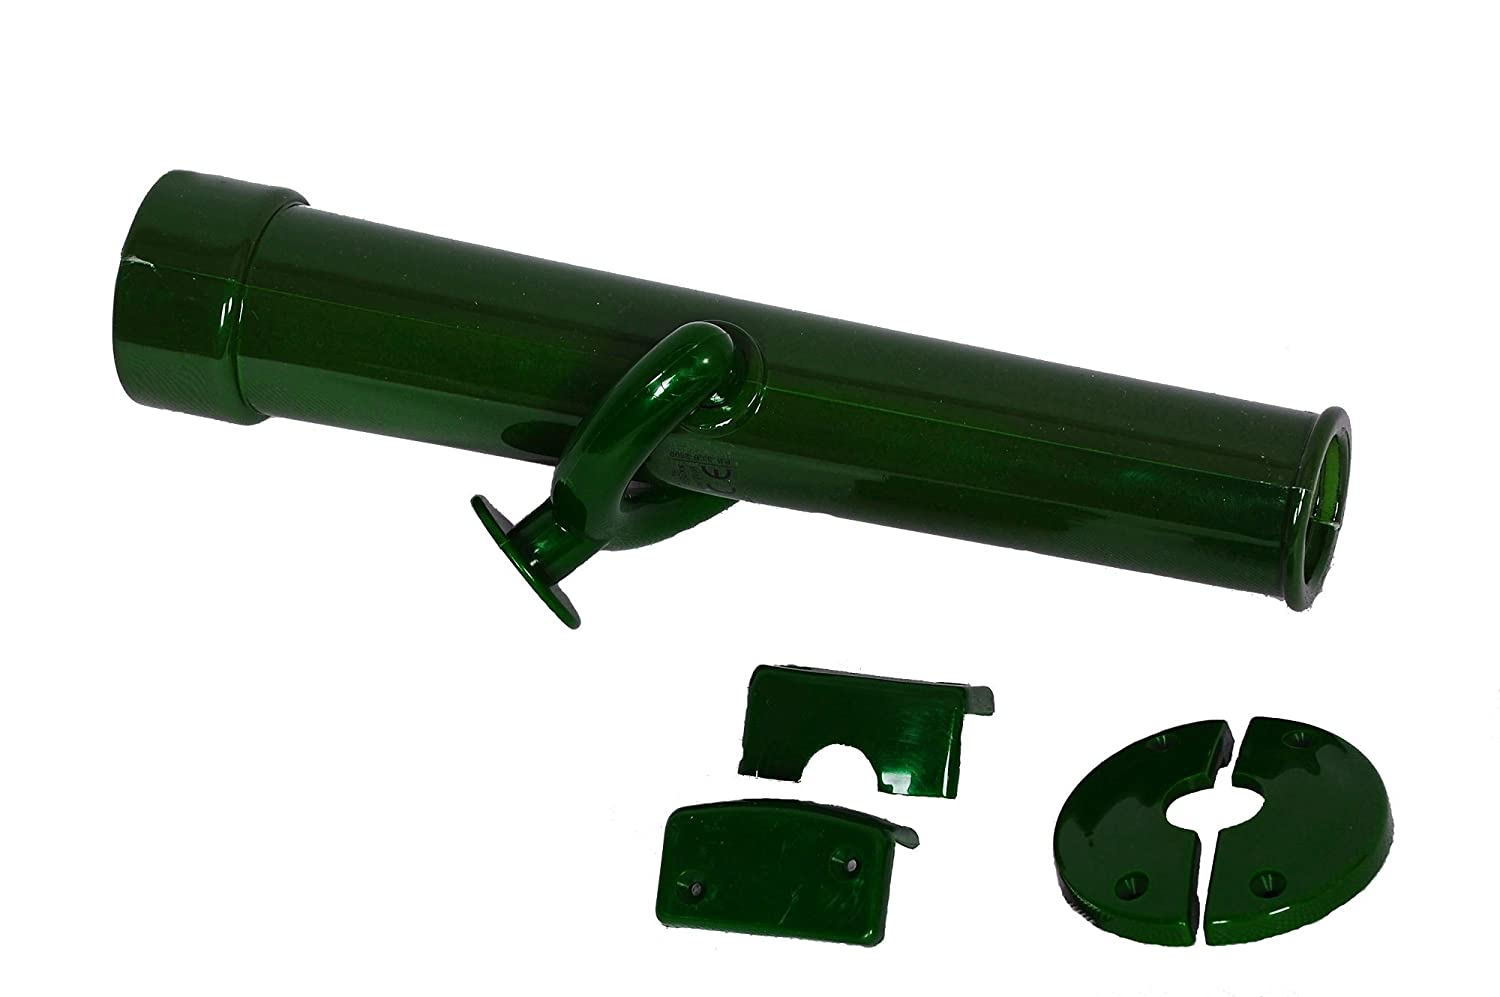 Green Outdoor Toy Telescope - add to garden climbing frame or tree house Outdoor Play Days